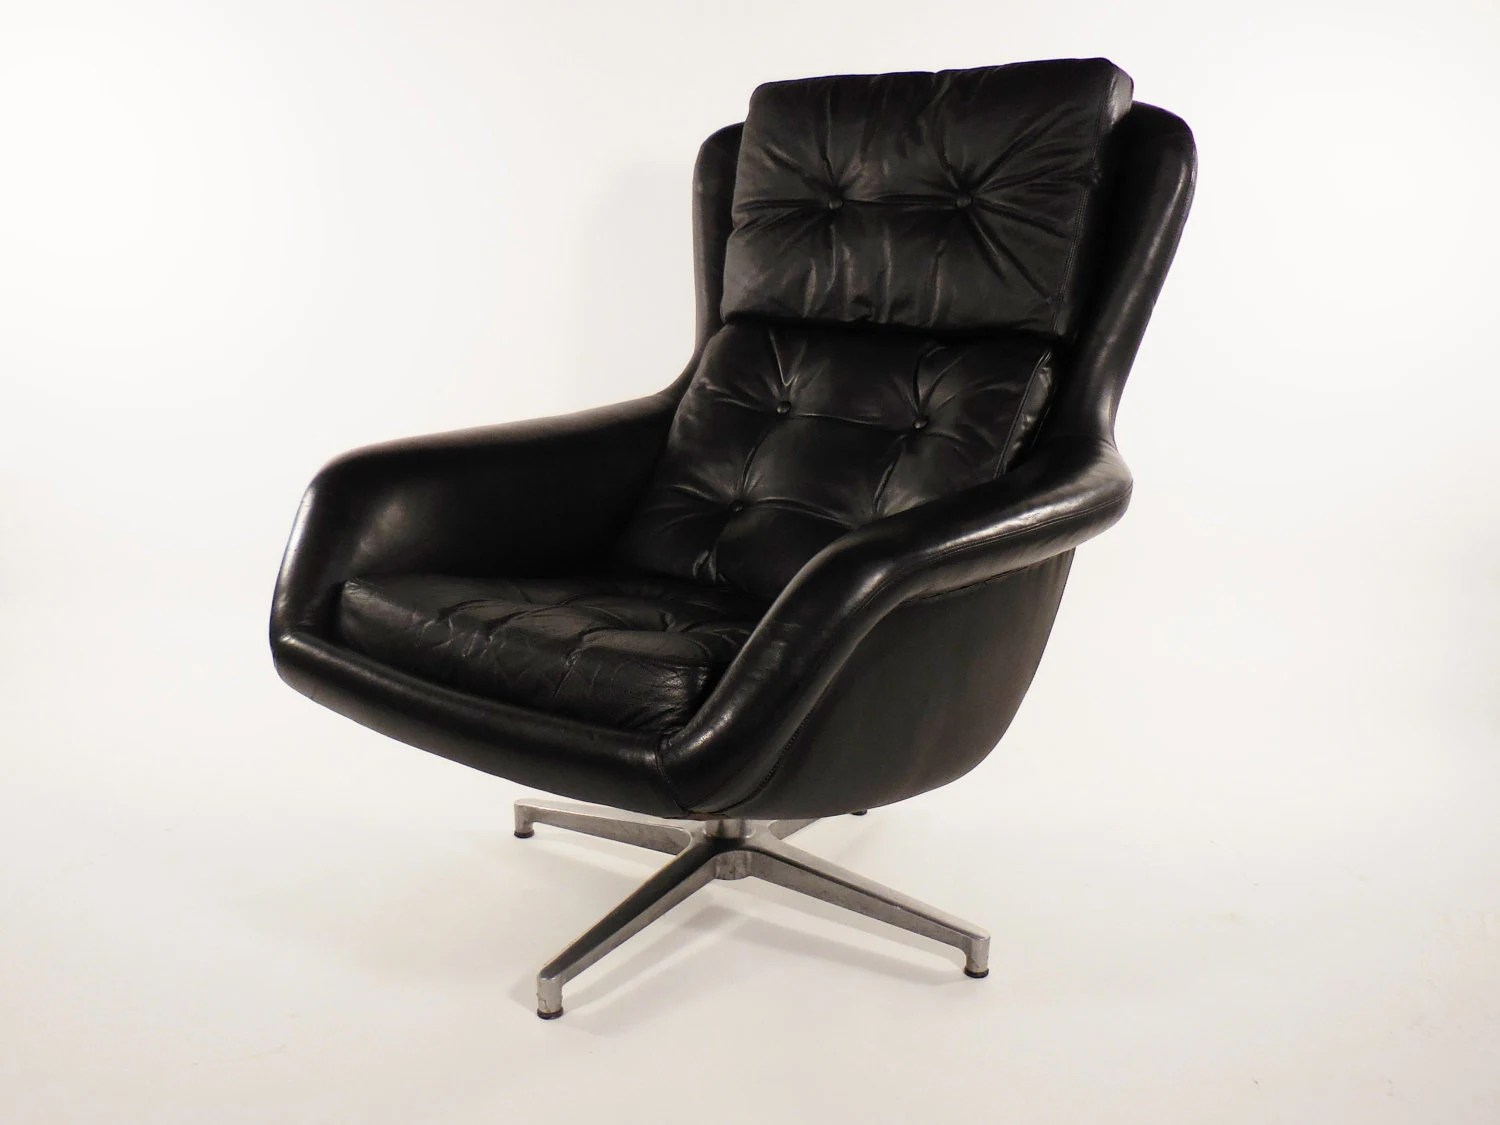 swivel chair mid century kitchen chairs Mid Century Black Leather DUX Form 7 Swivel Lounge Chair by Alf Svensson